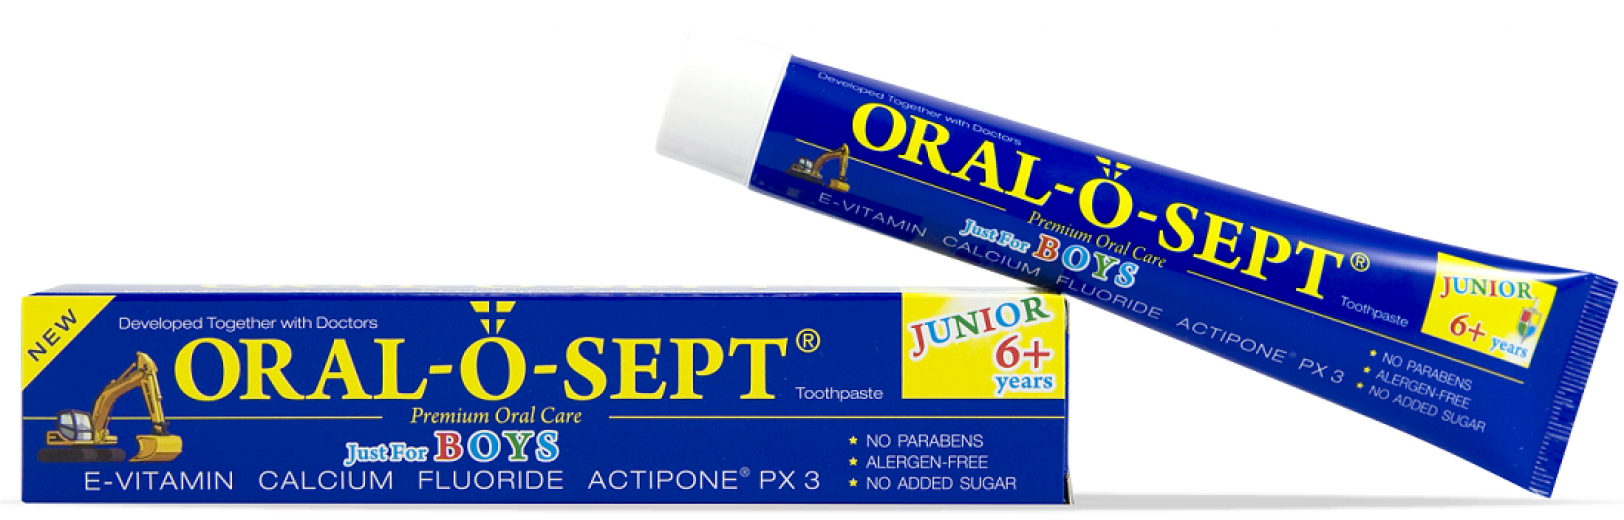 Oral-o-sept, Junior 6+, Boys, zobna pasta, 75 ml